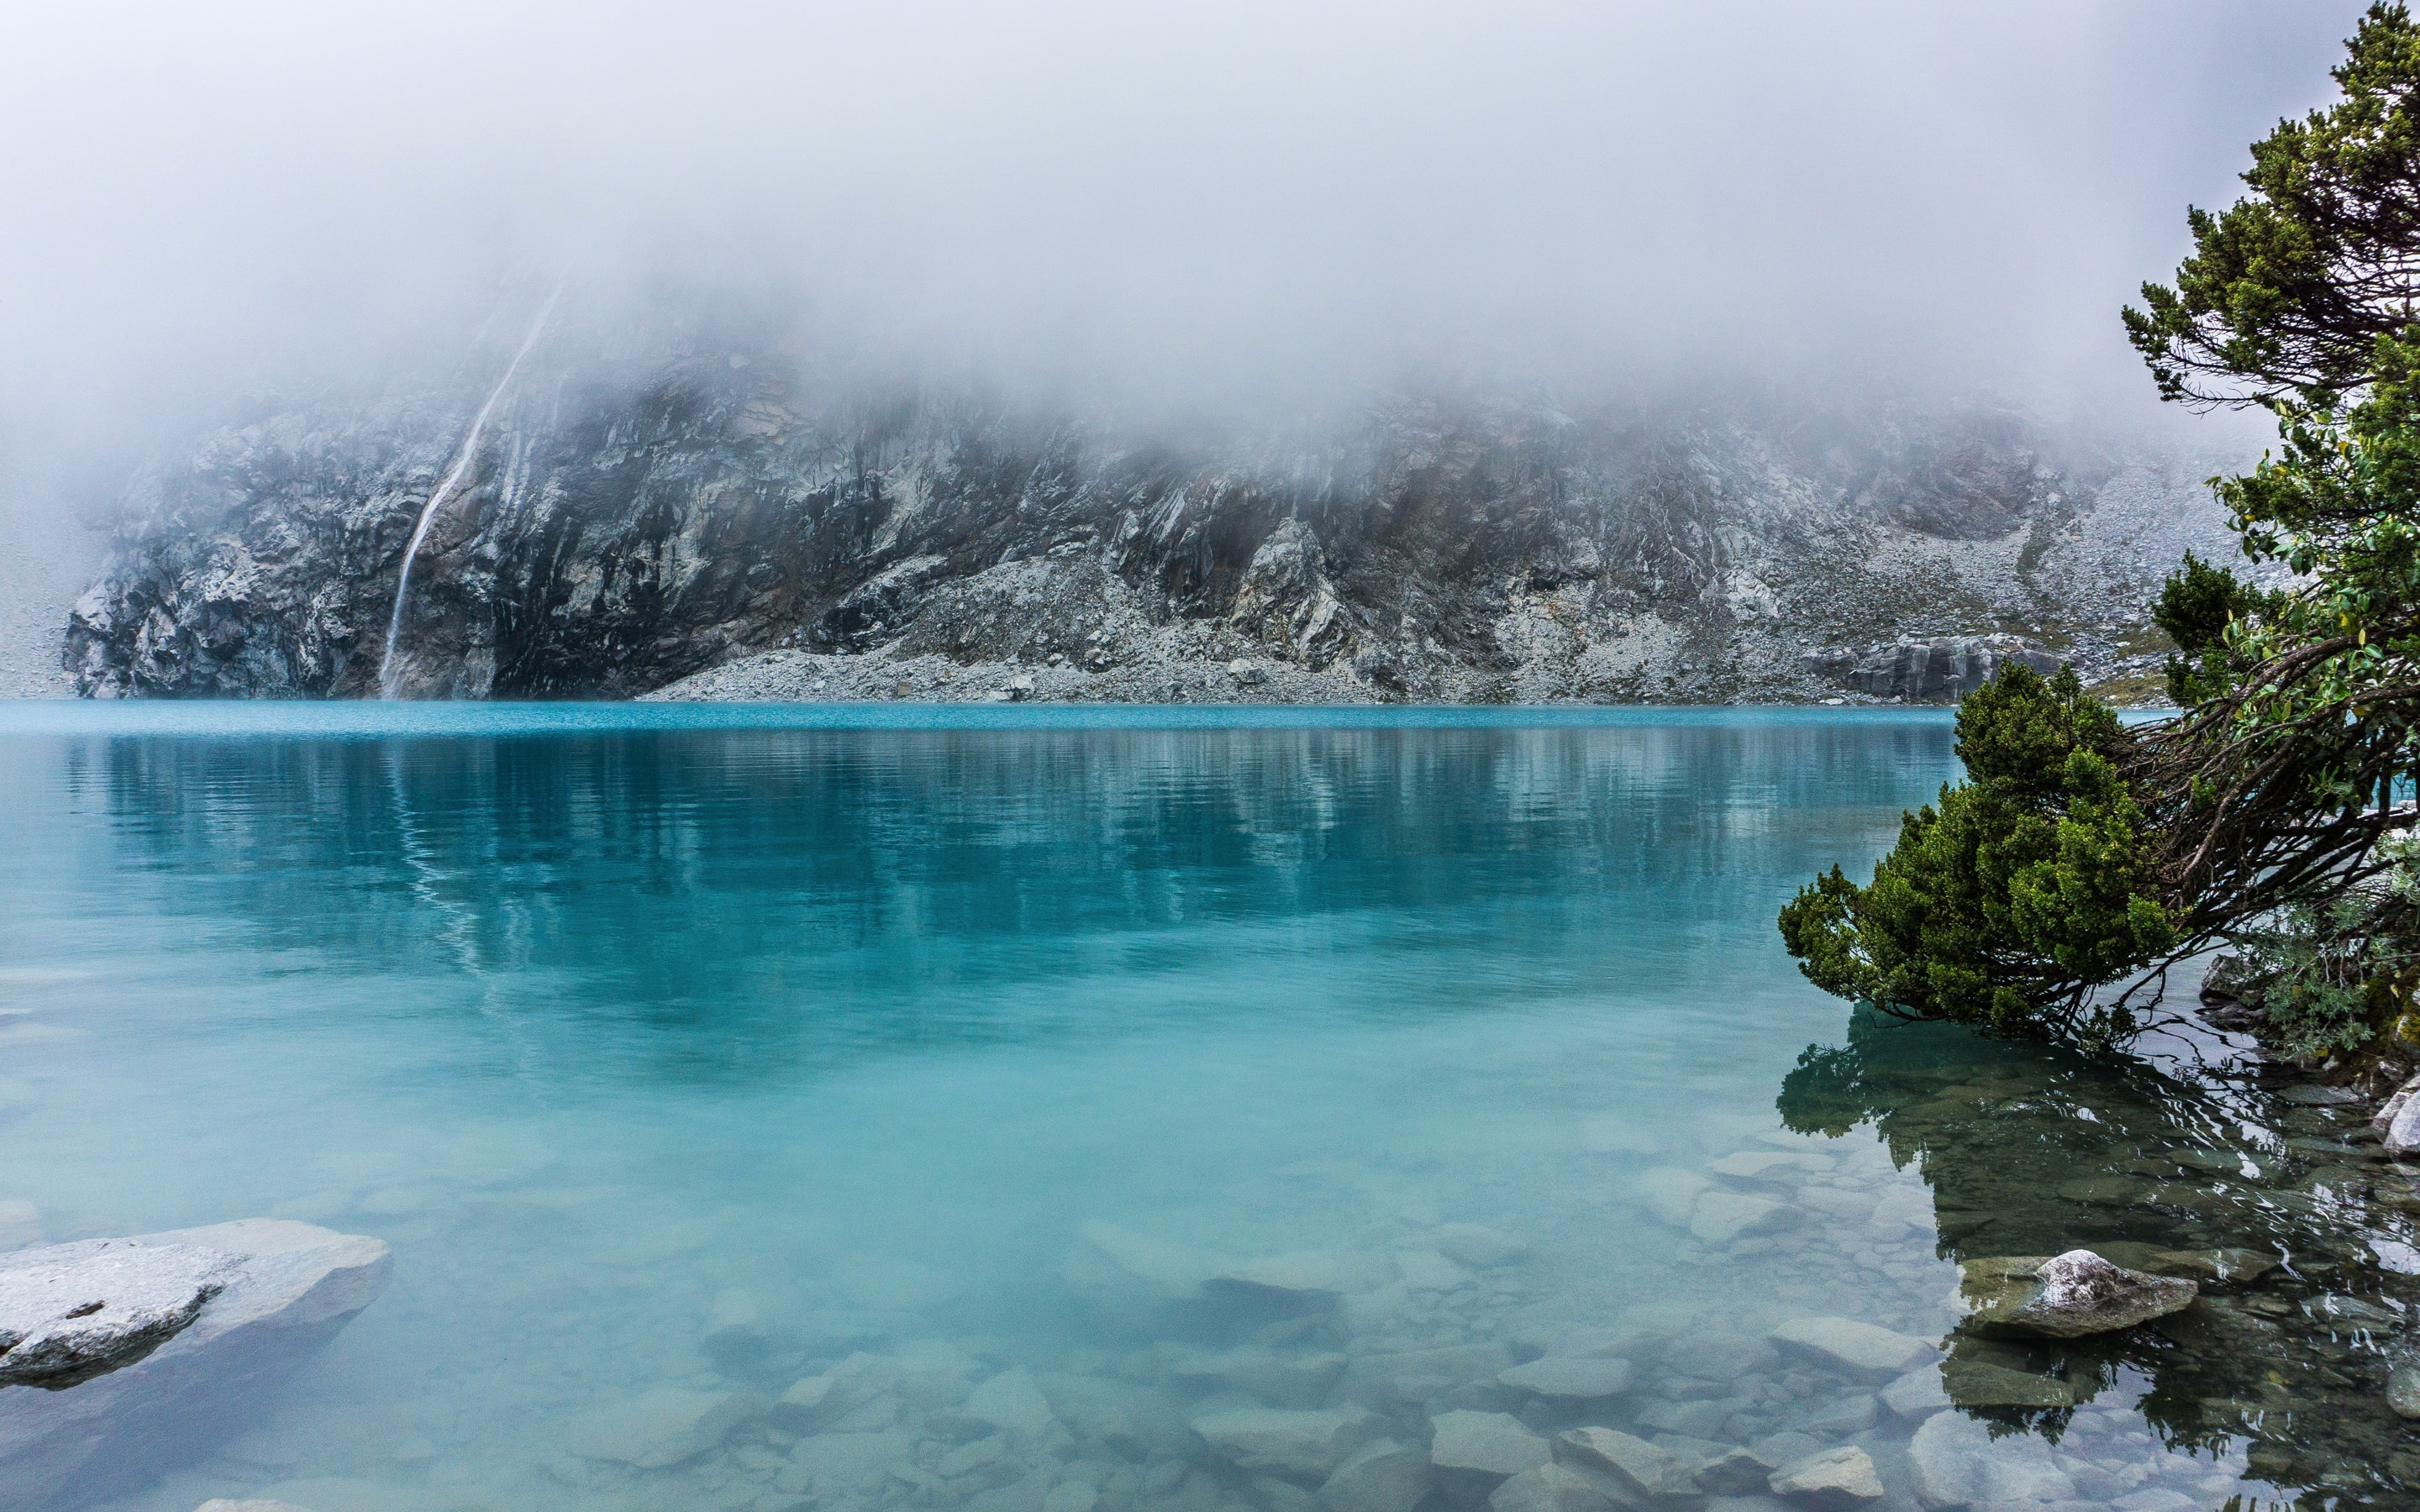 Foggy mountains surrounded by crystal blue water below